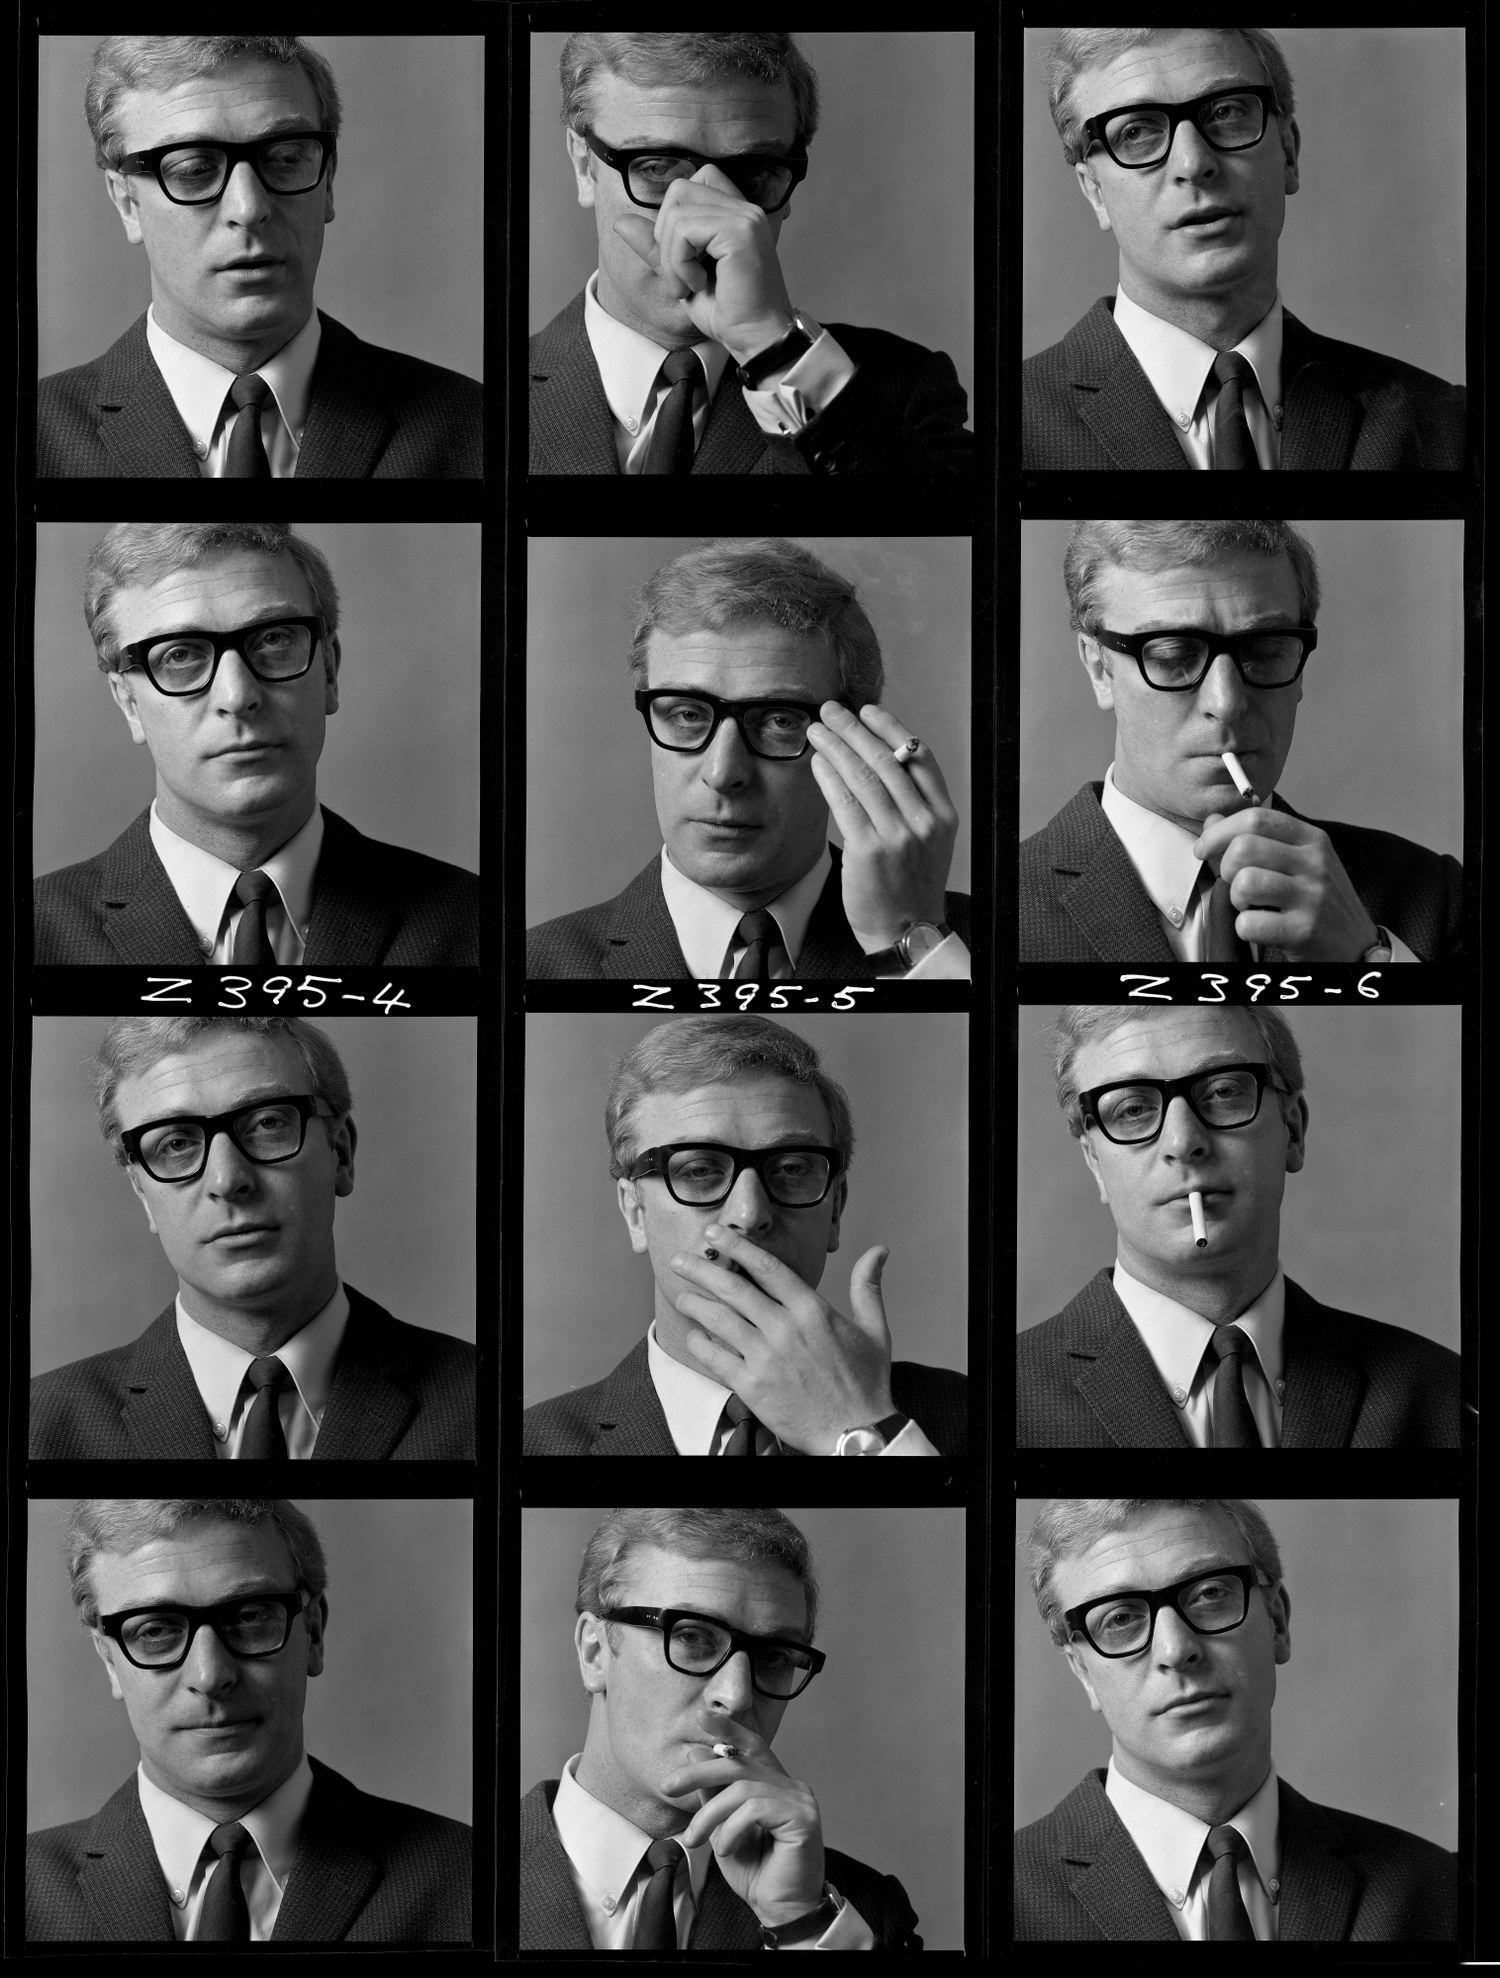 1520358630-5125MDUFFYARCHIVEZ0395CONTACT01MICHAELCAINE1960scompressed